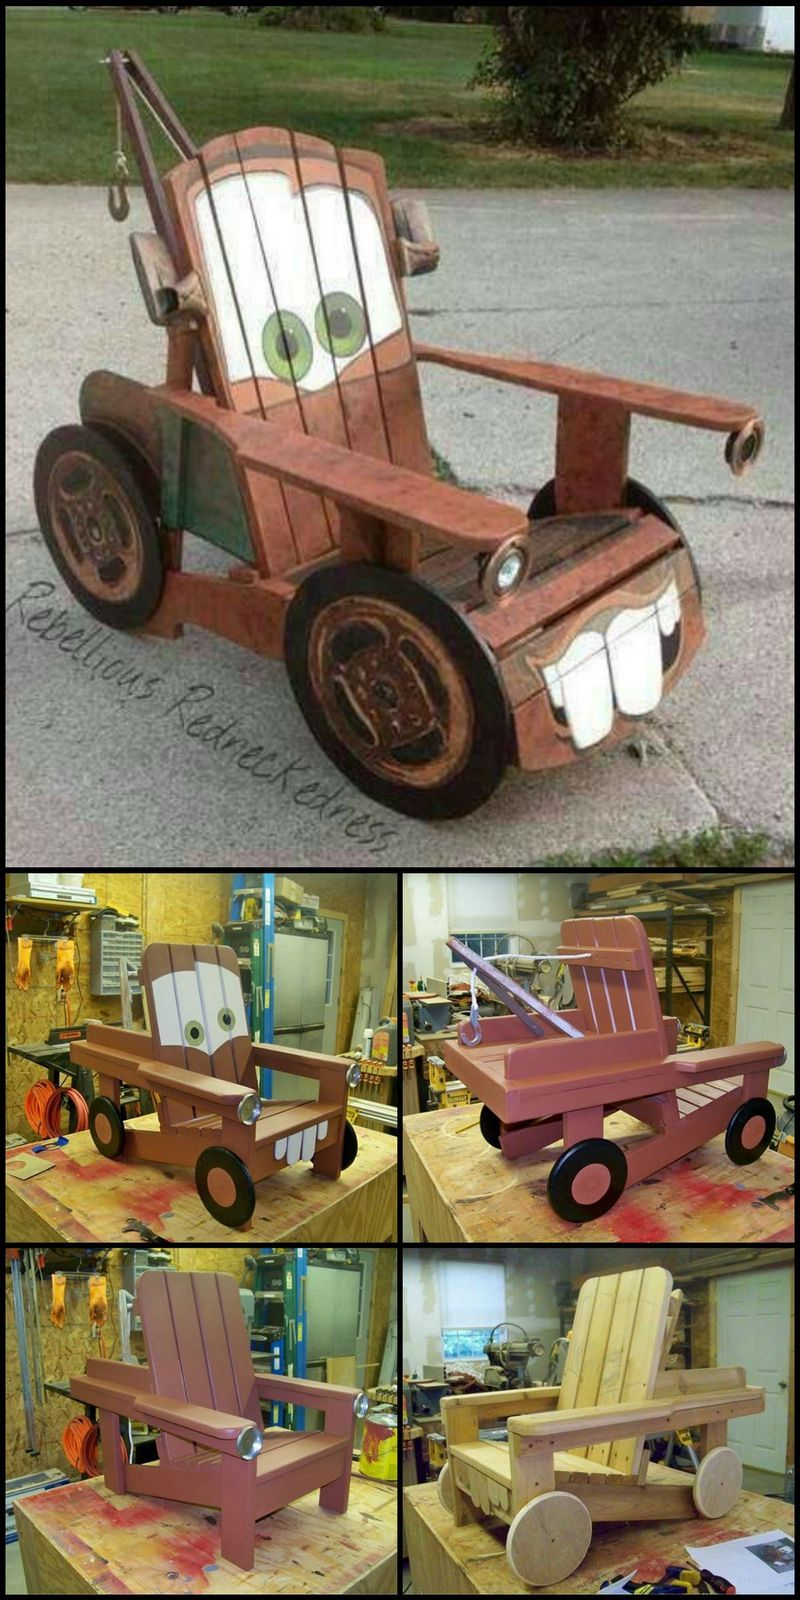 Superieur #woodworkingplans #woodworking #woodworkingprojects How To Build A Tow  Truck Mater Chair Theownerbuilderne... If You Donu0027t Recognize This  Character, ...